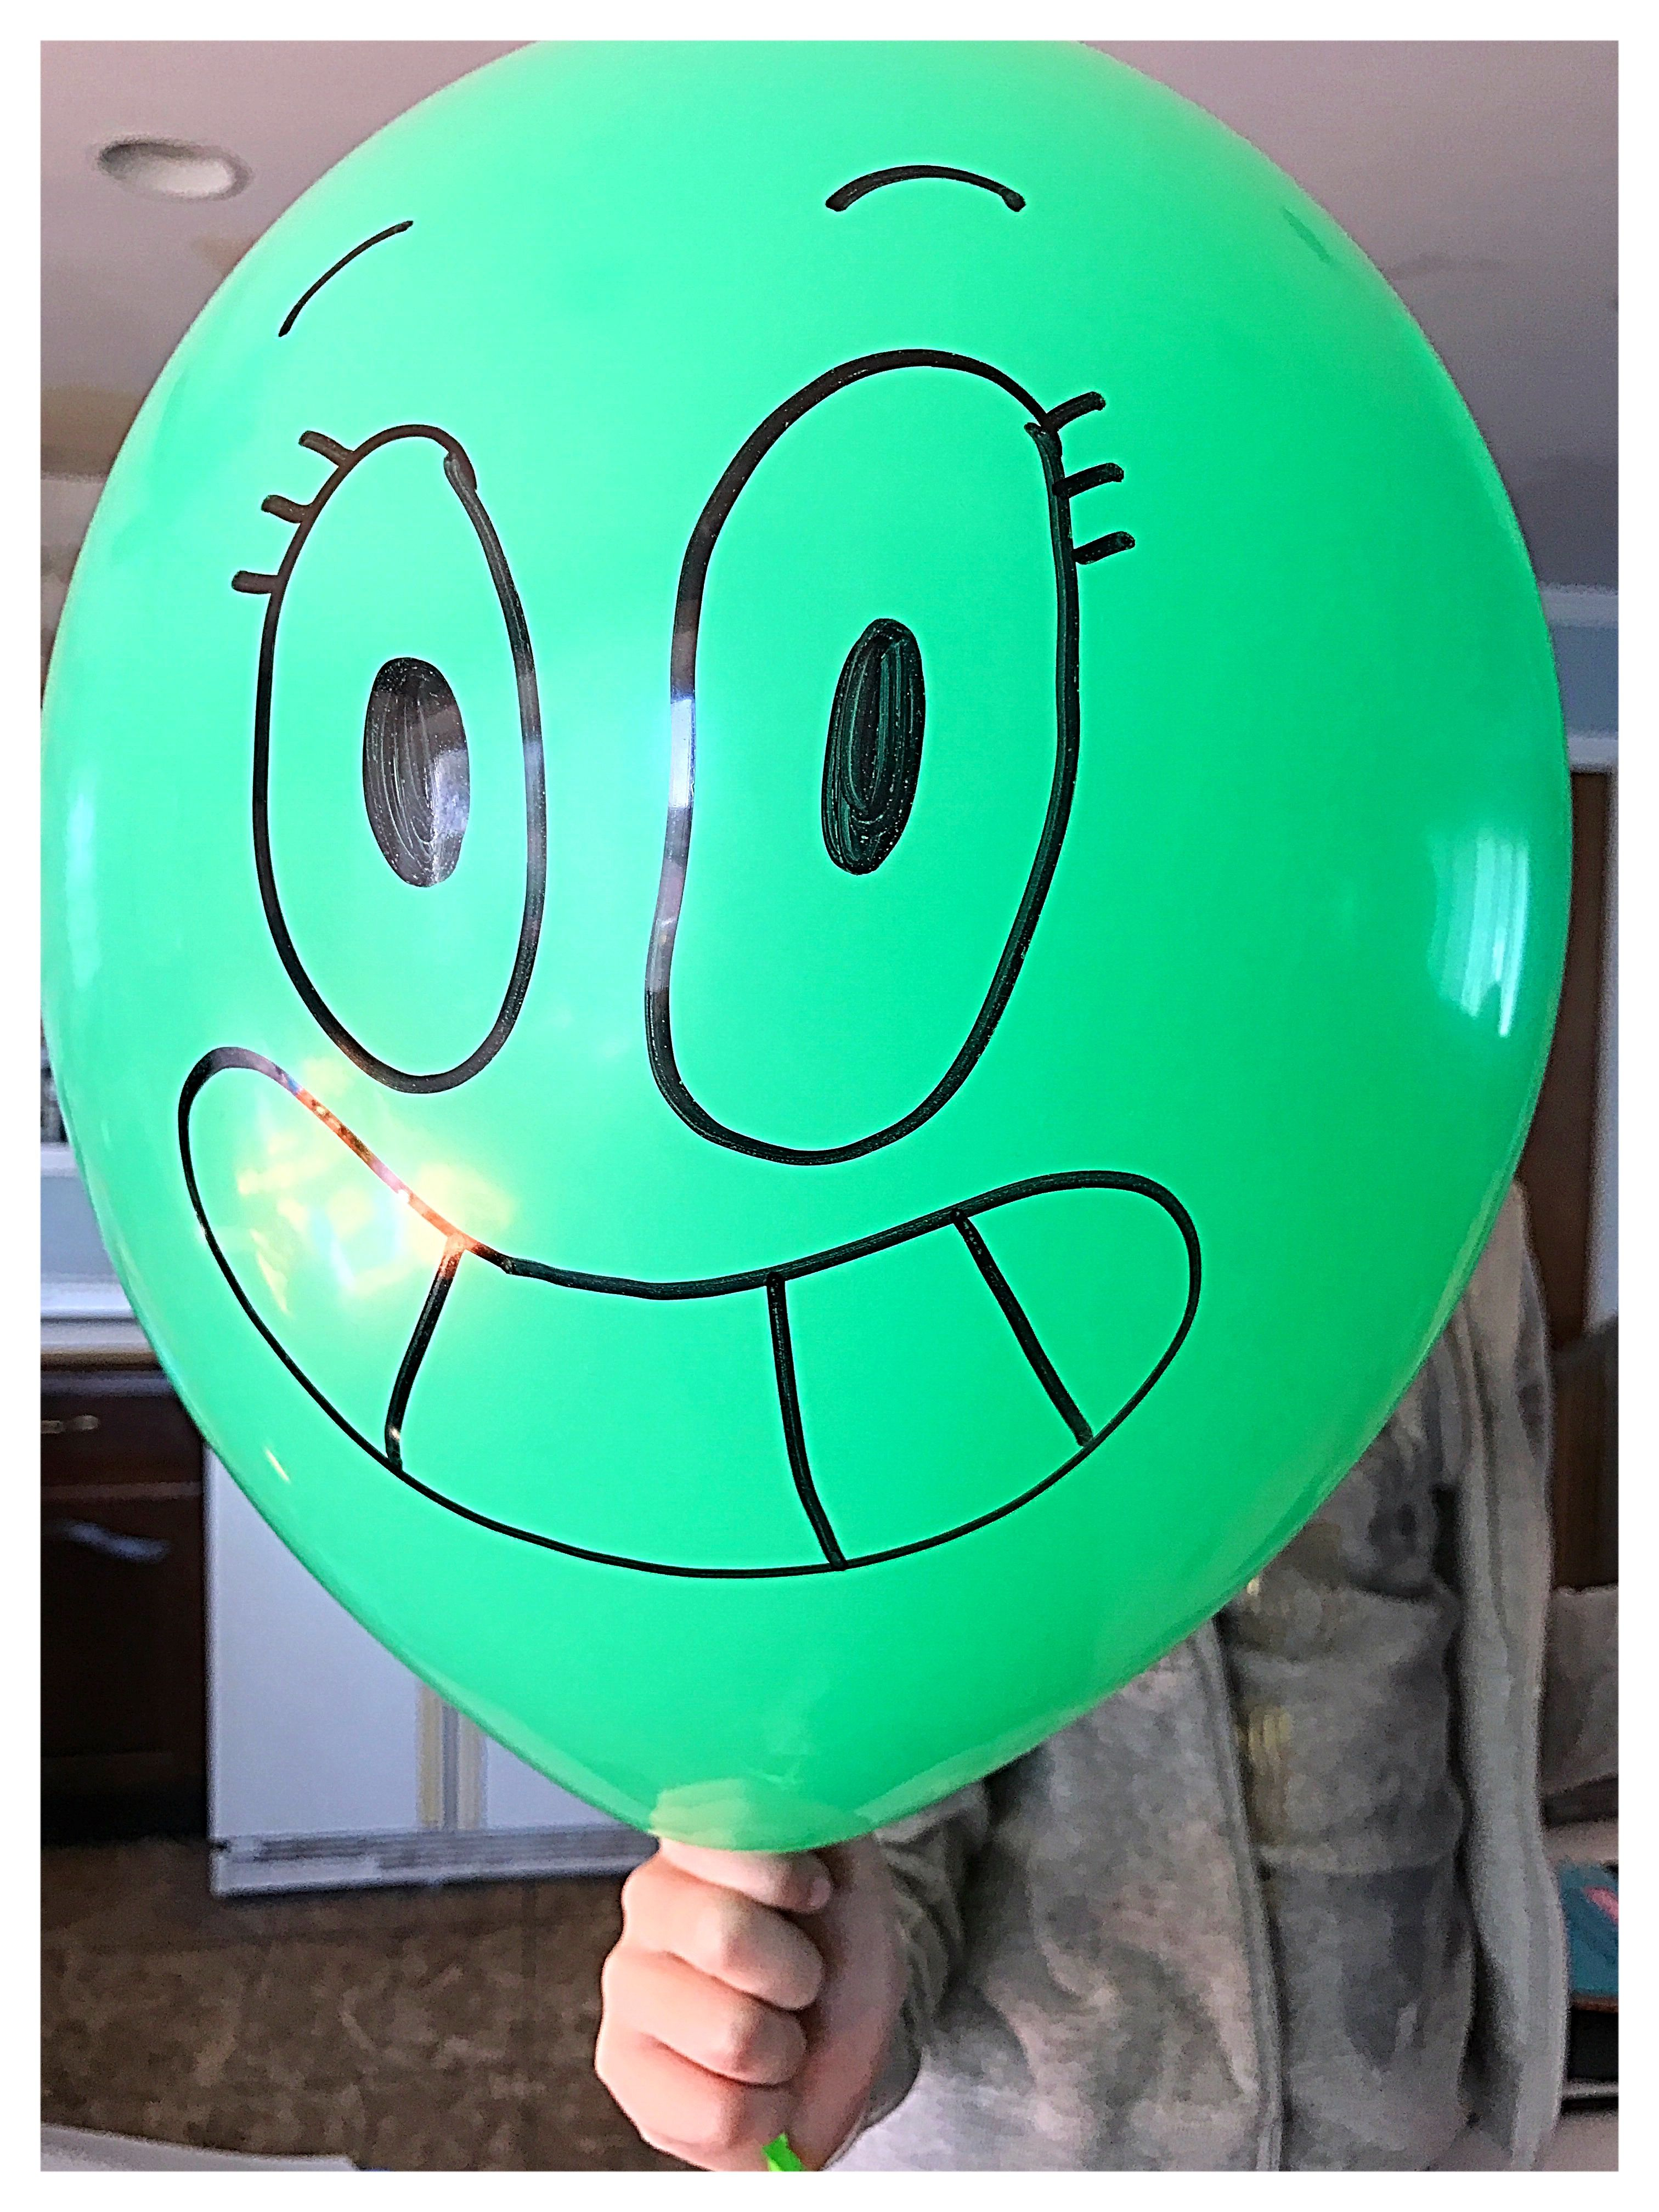 Made Our Own Alan Balloons With Images The Amazing World Of